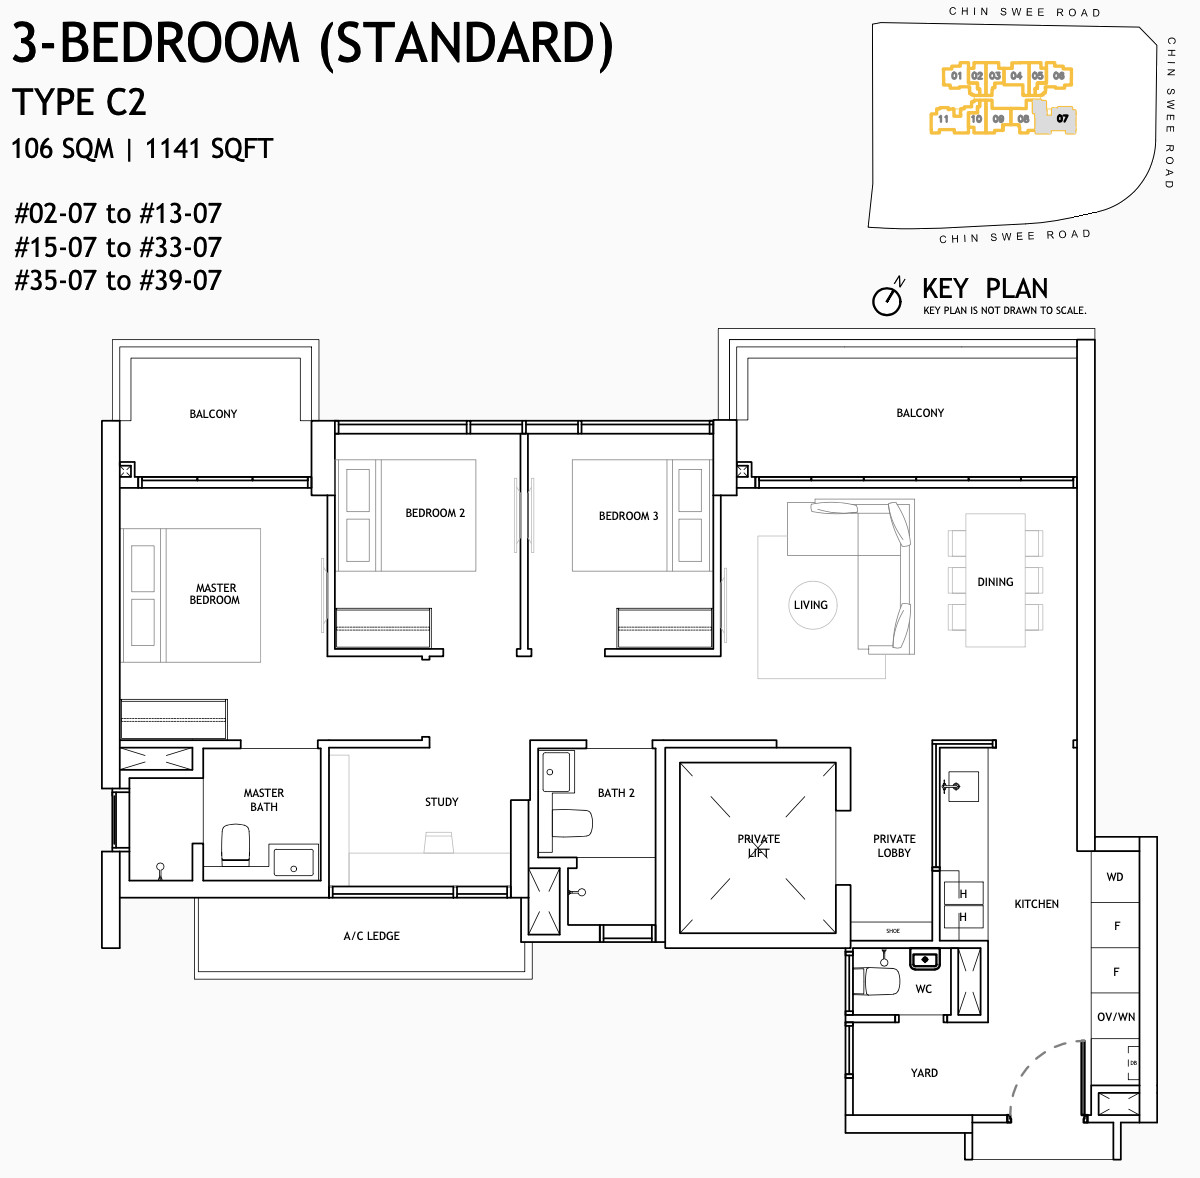 The Landmark Condo Floor Plan . 3 Bedroom Type C2